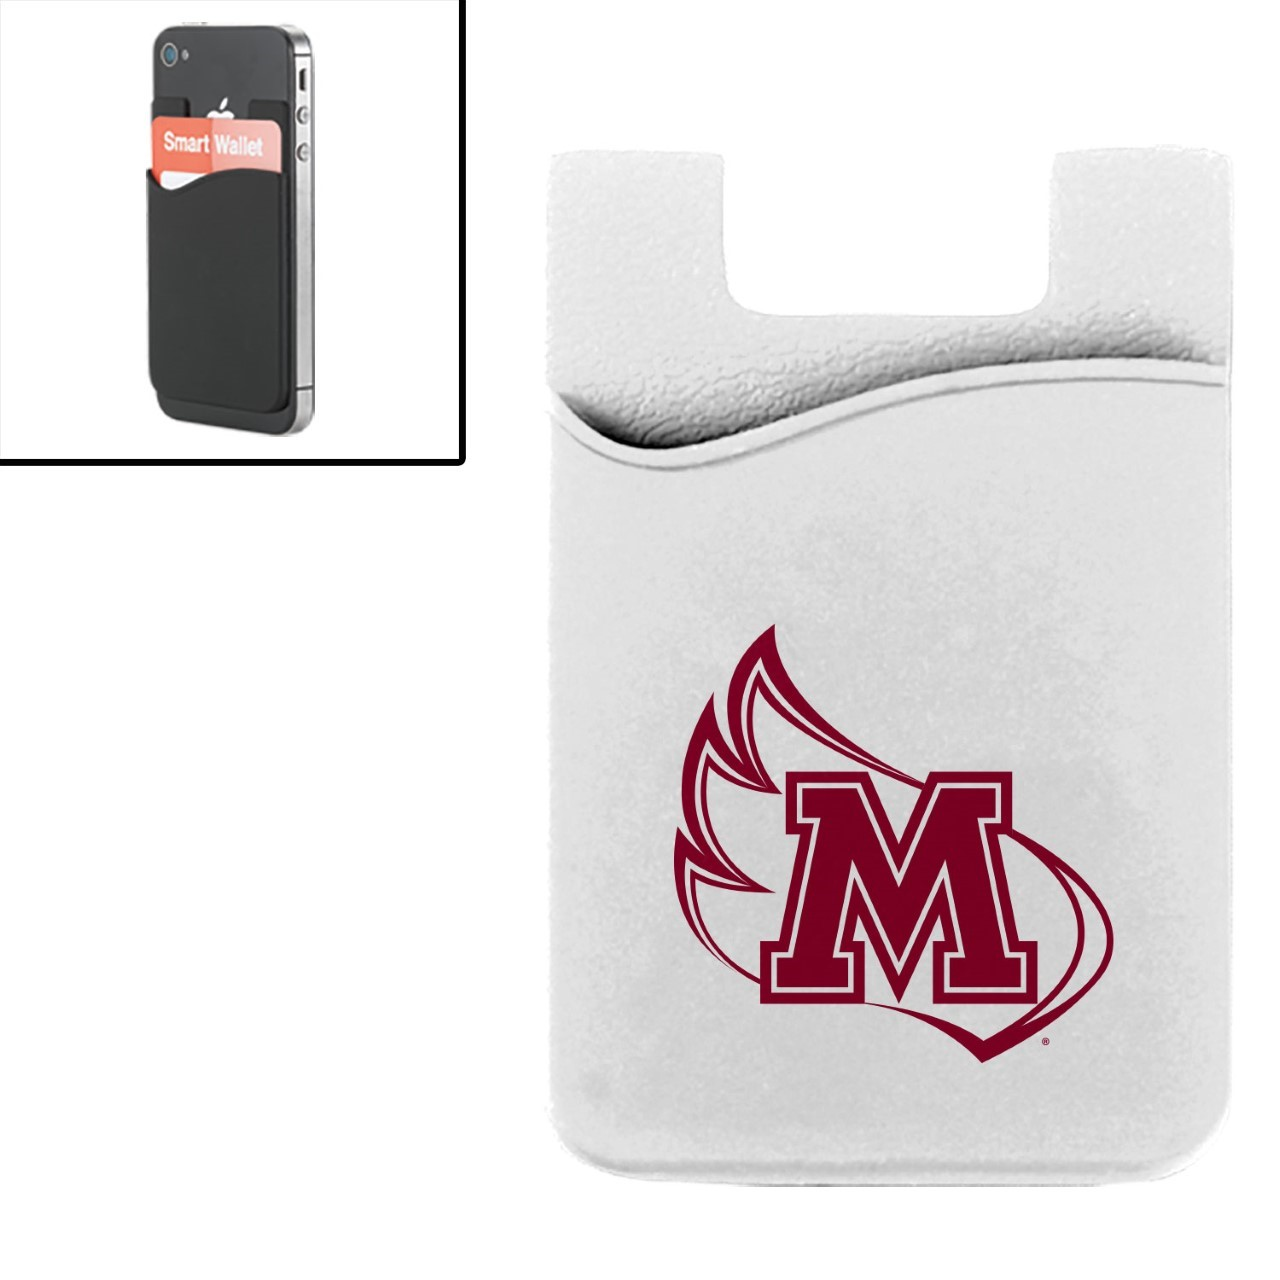 Image for the White Media Wallet with Maroon M-Wing product